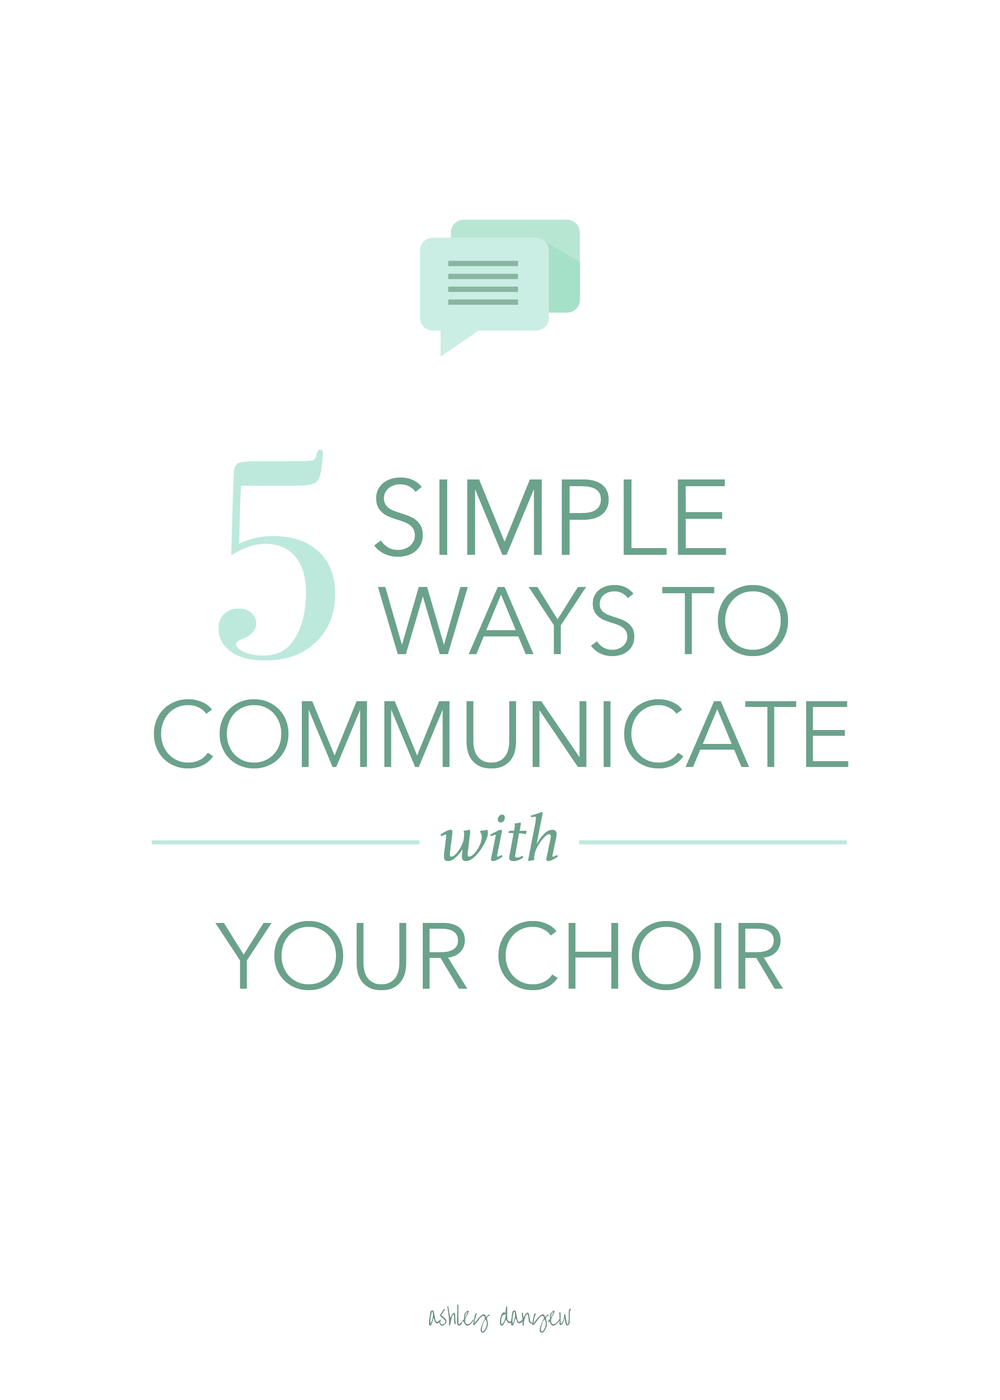 5 Simple Ways to Communicate with Your Choir-04.png